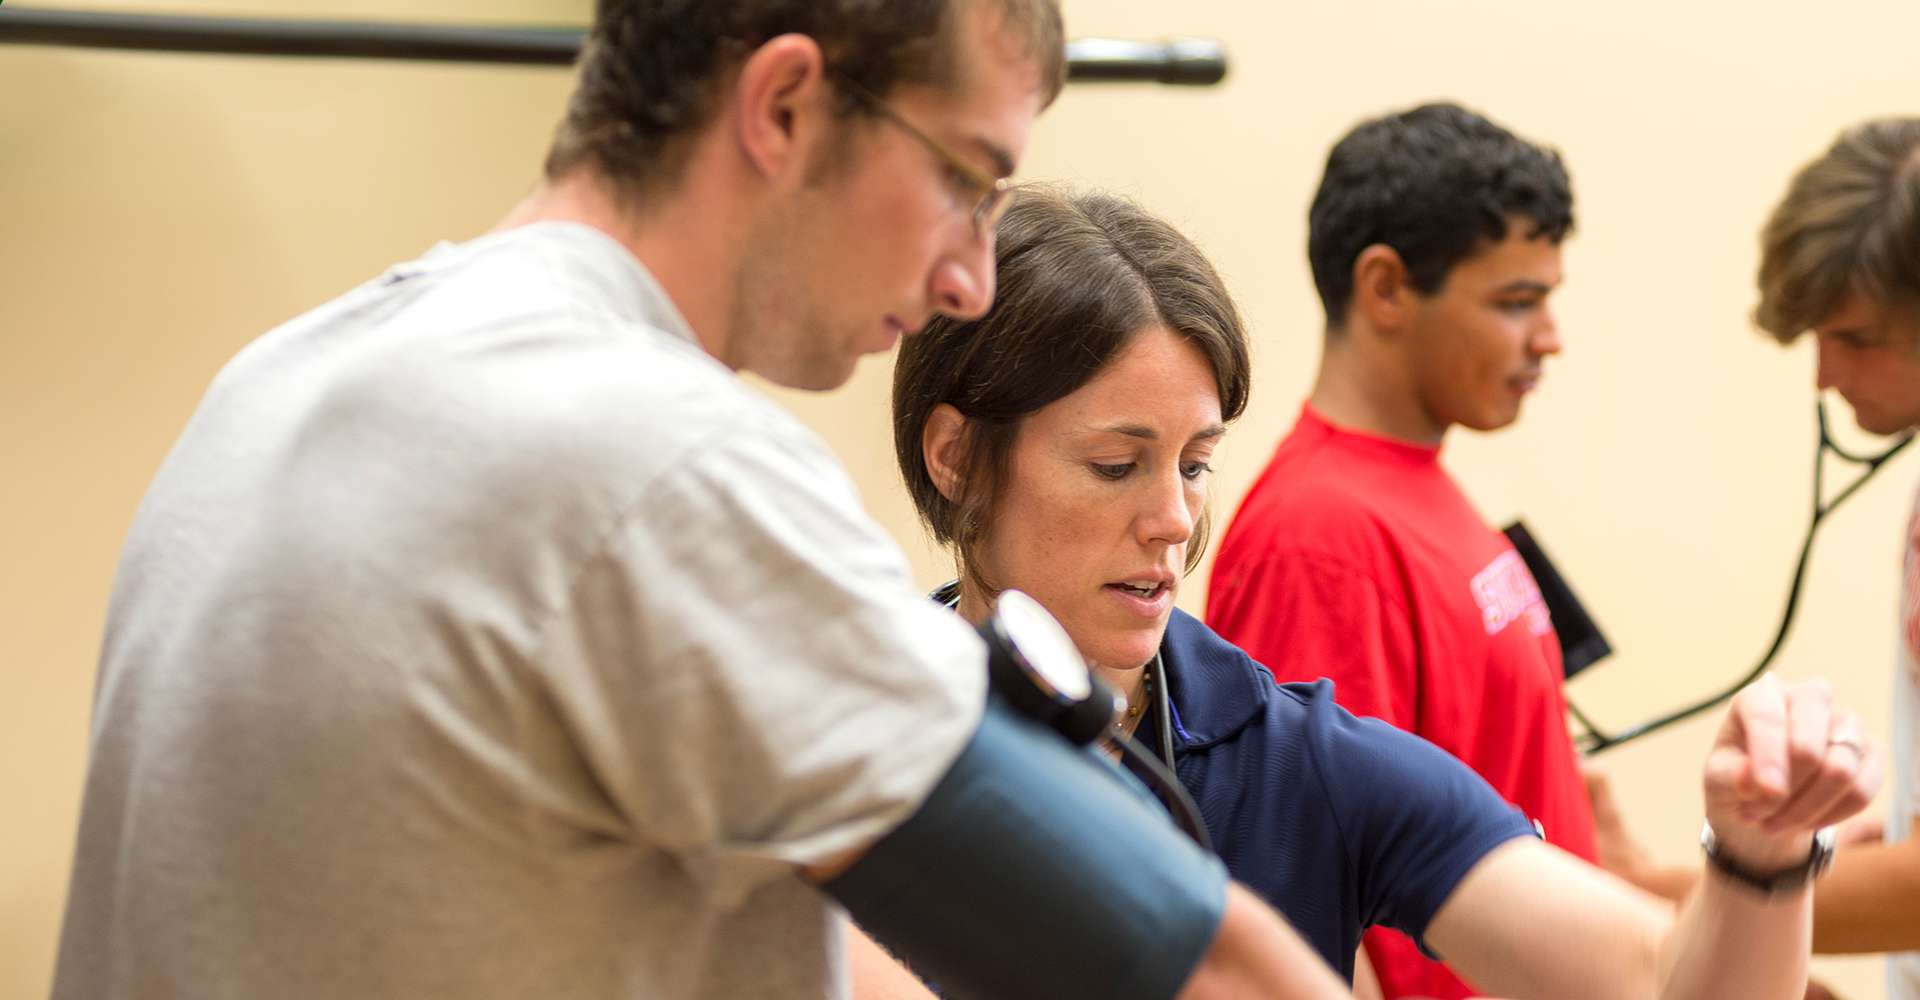 Teacher working with exercise science student